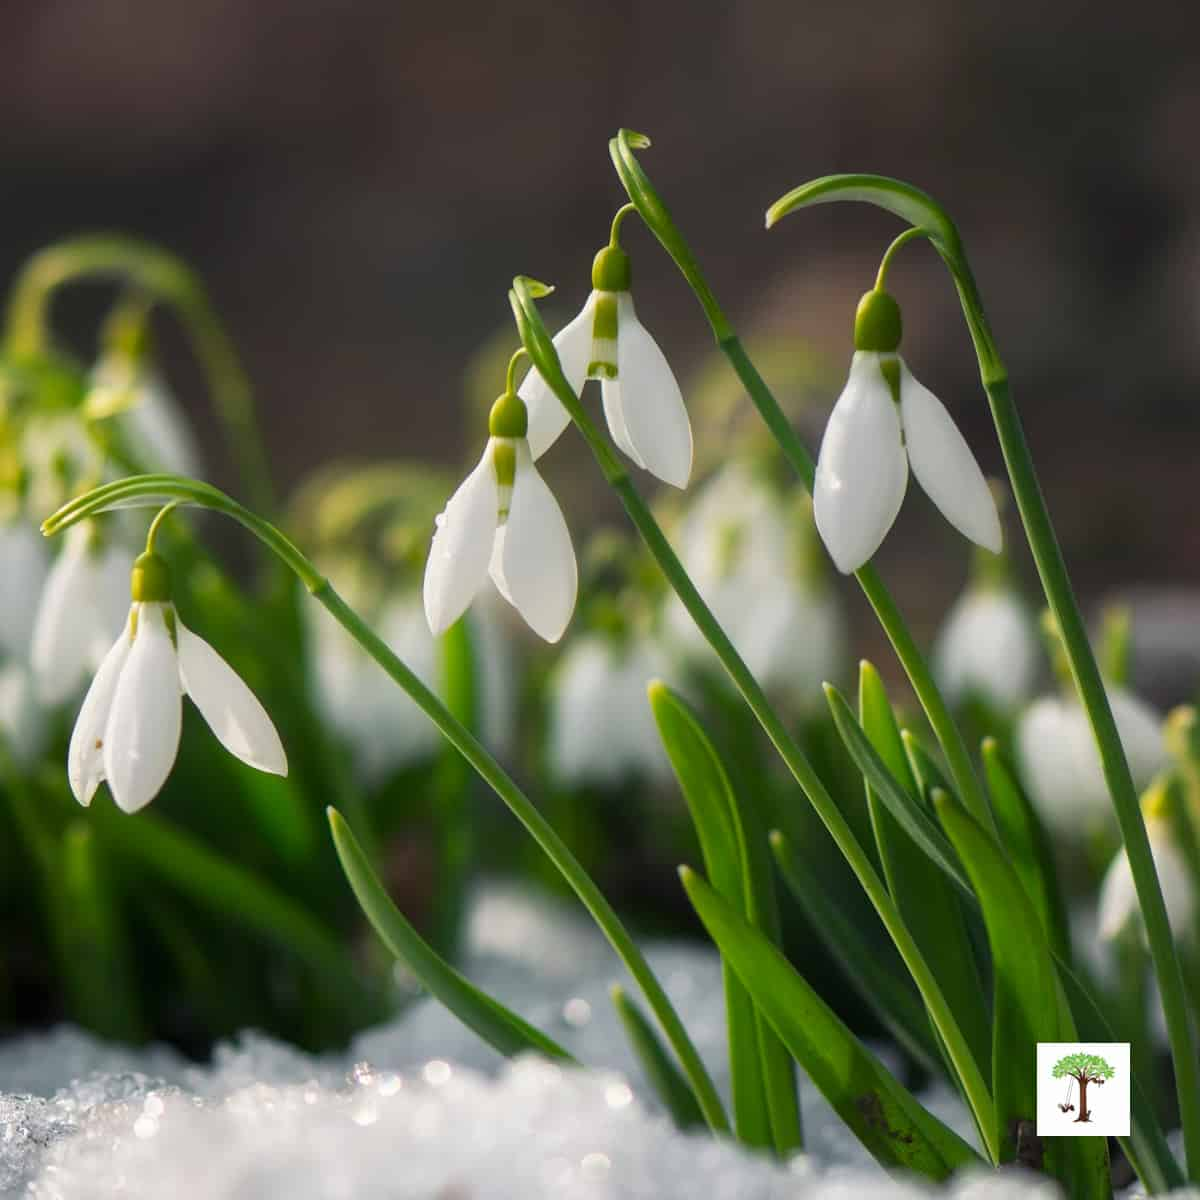 sign of spring - snowdrop flowers pushing through the melting snow and blooming in early spring.